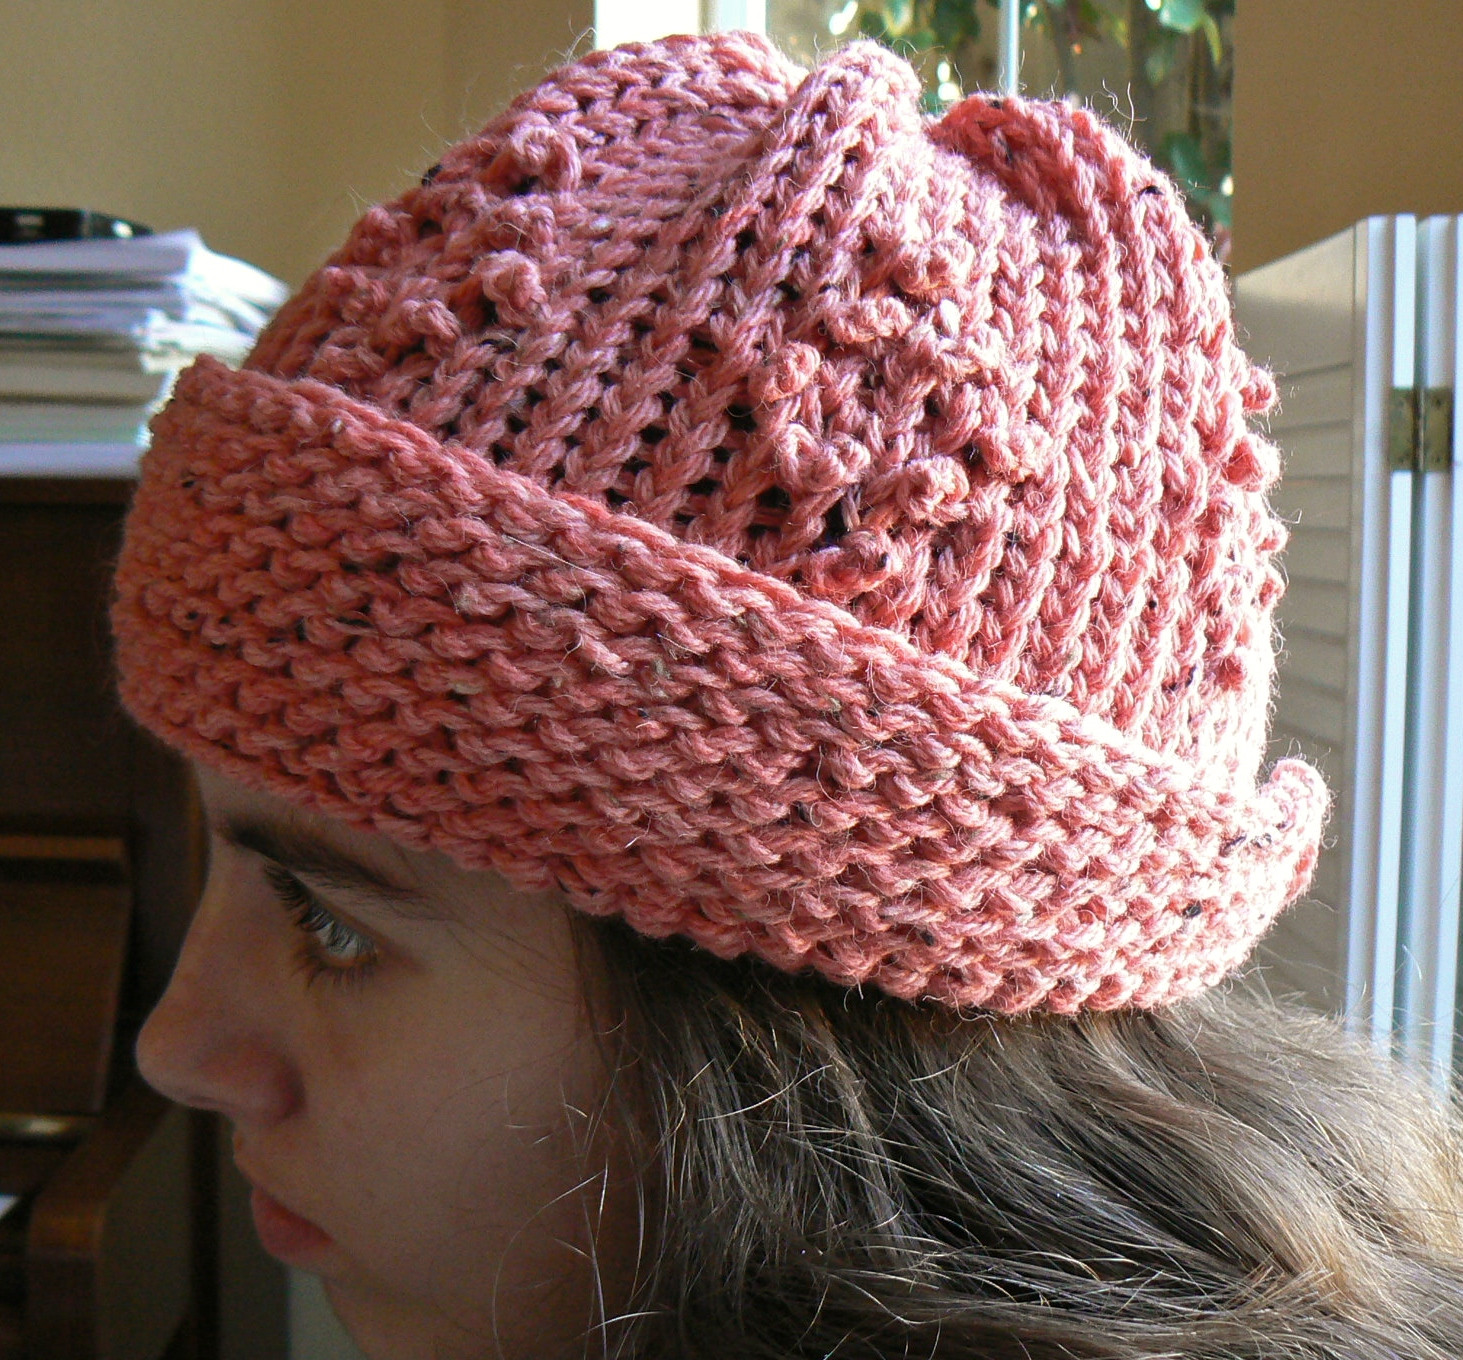 Hat Loom Elegant Invisible Loom Innovative Patterns for Loom Knitters Of Amazing 48 Pictures Hat Loom